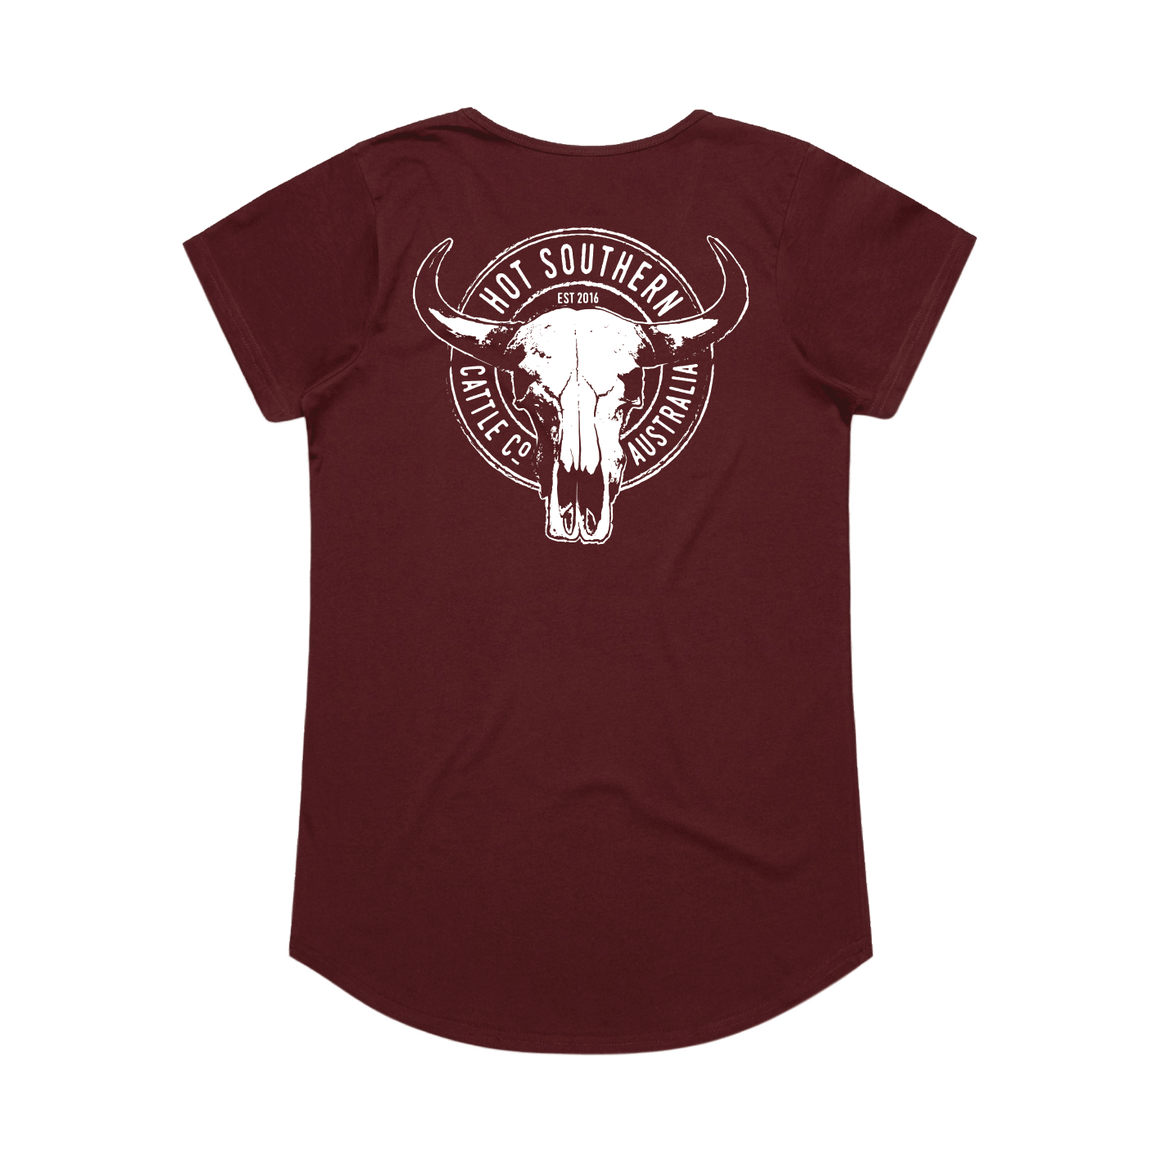 Hot Southern Cattle Co Maroon Womens Scoop T-Shirt